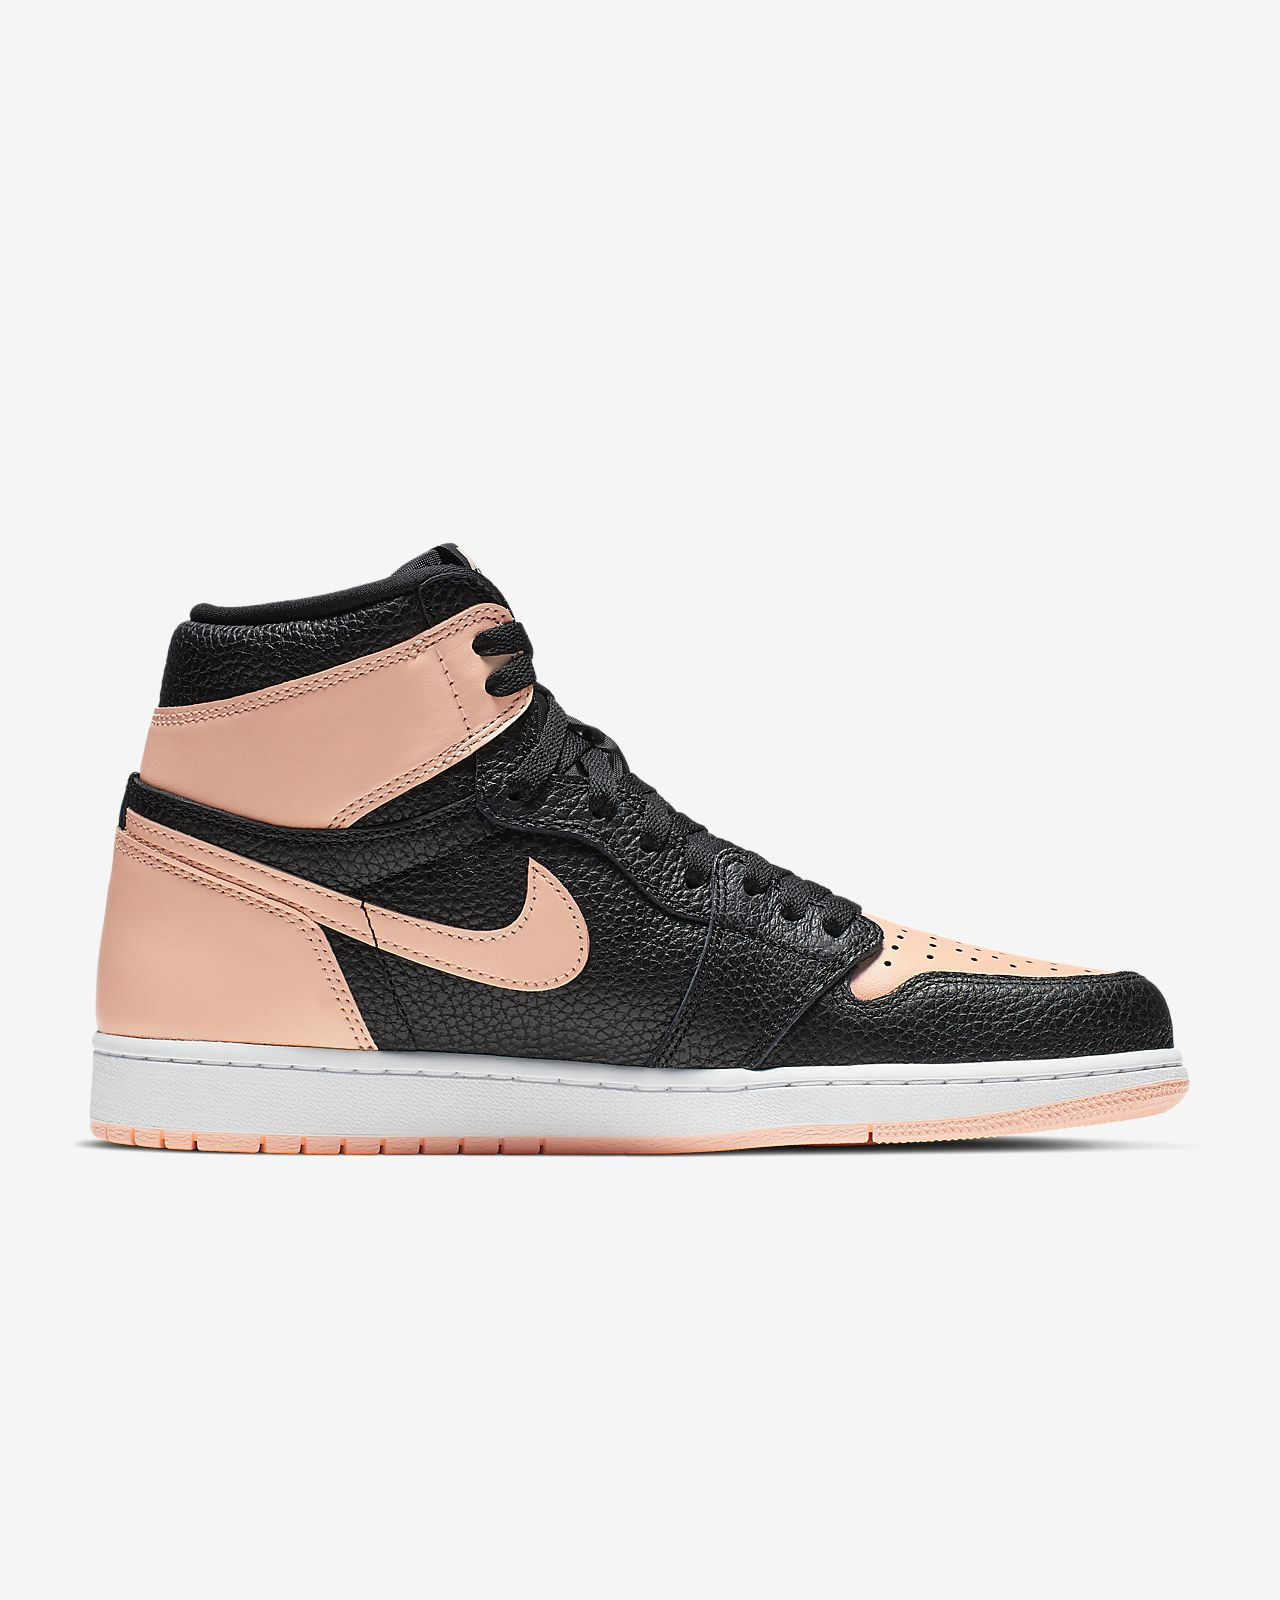 new styles d59c1 7f8e2 ... Air Jordan 1 Retro High OG Shoe